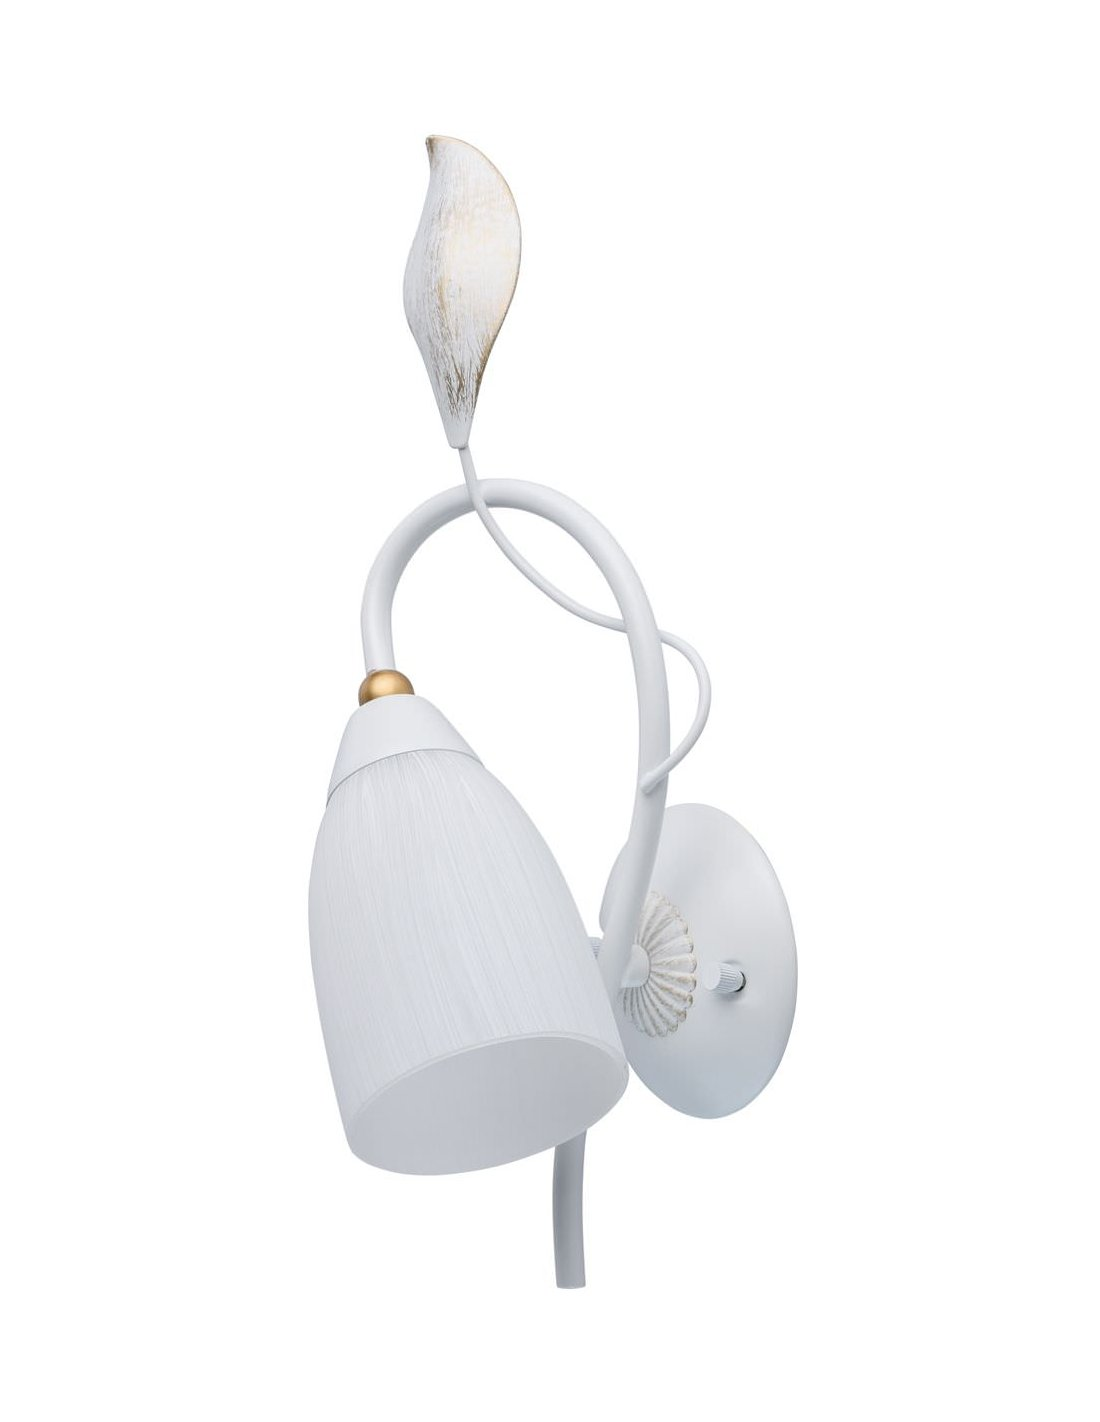 Blanc Collection Antony FloraMw Applique Light KclJTF13